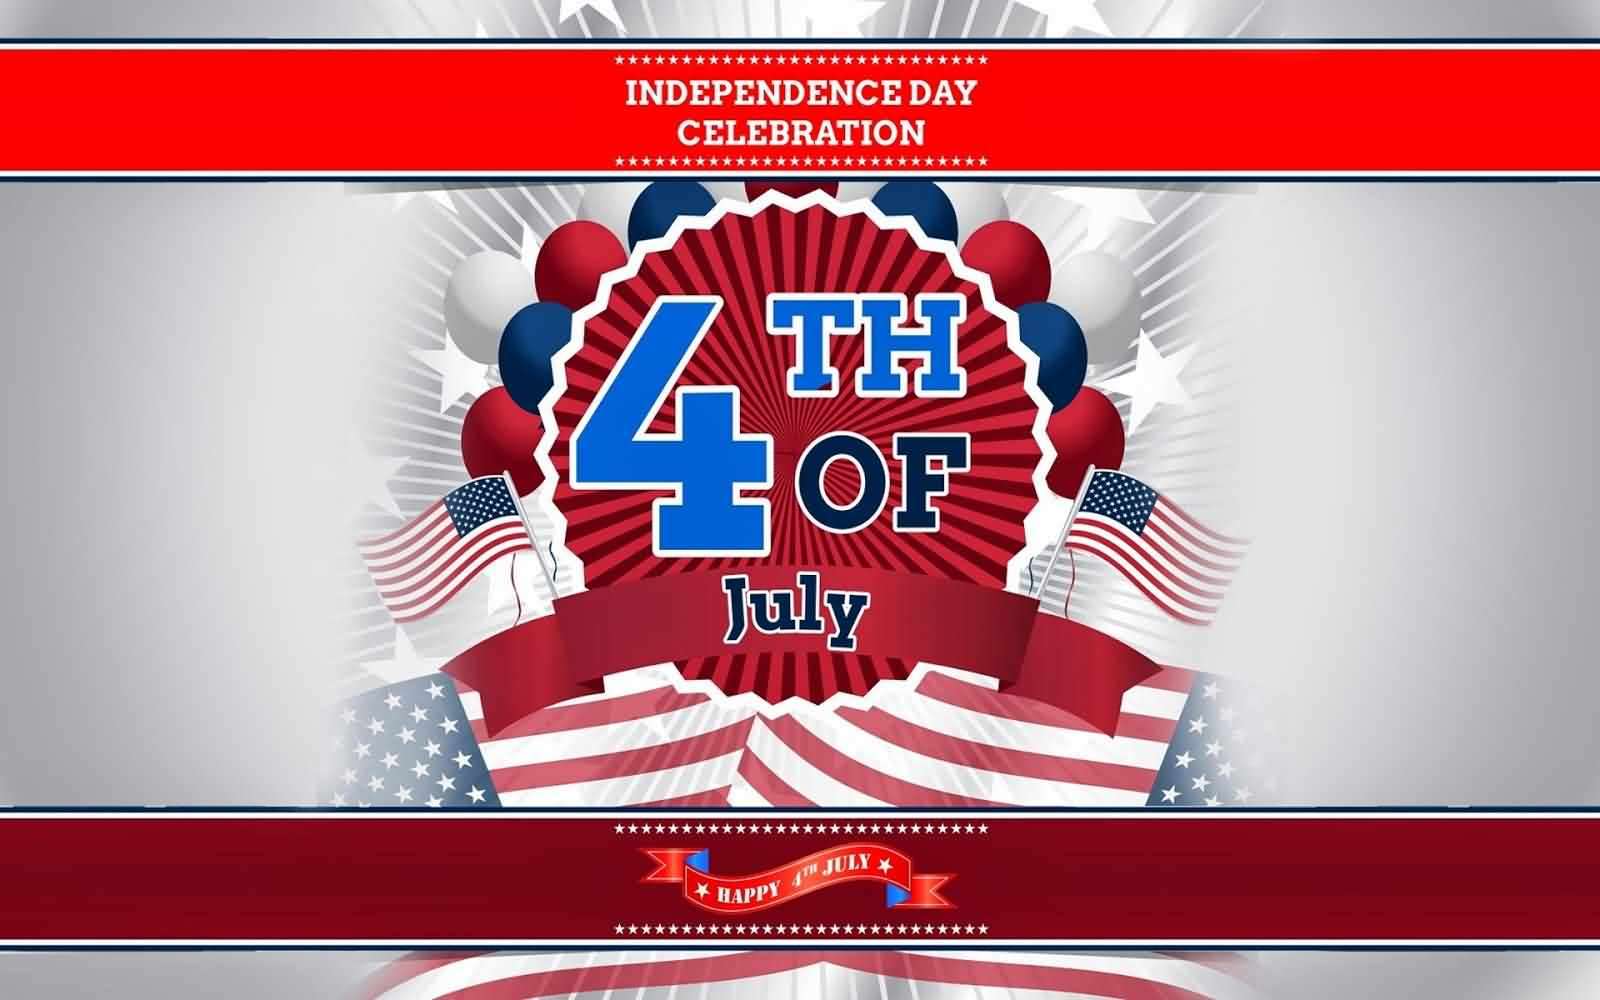 Independence Celebrations 4th Of July Greetings Card Message Image